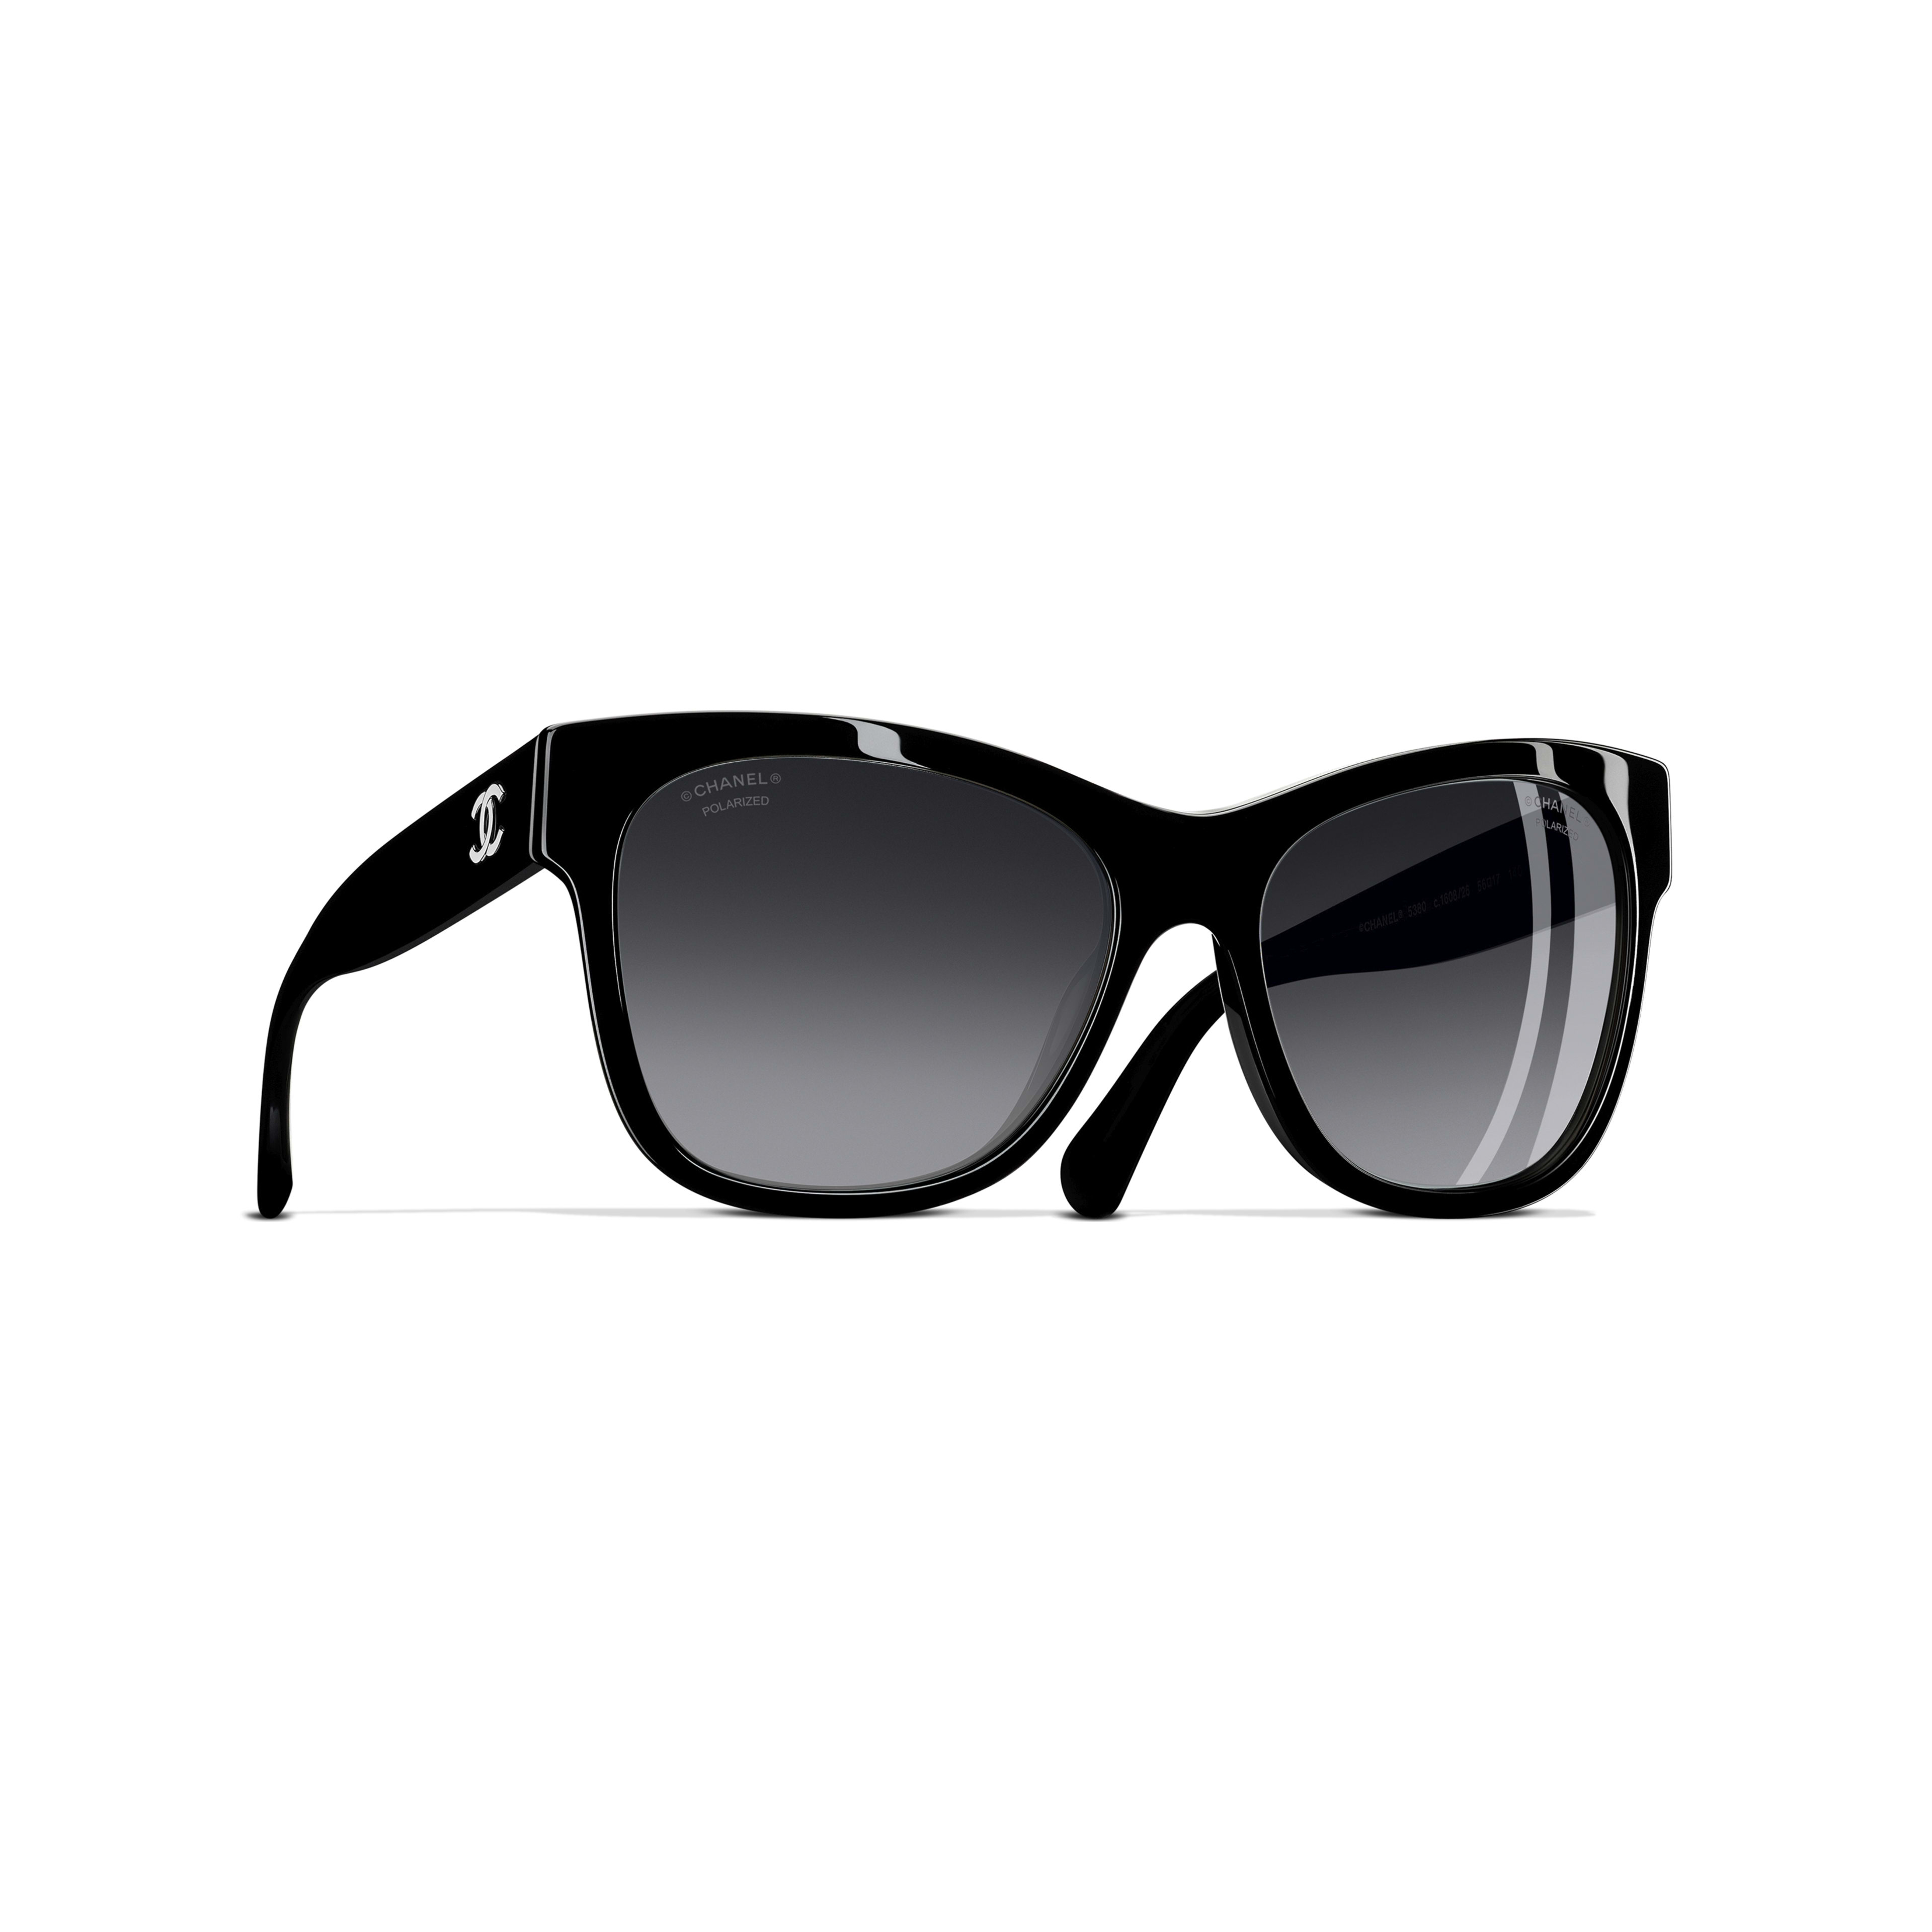 Square Sunglasses - Black - Acetate - Default view - see standard sized version